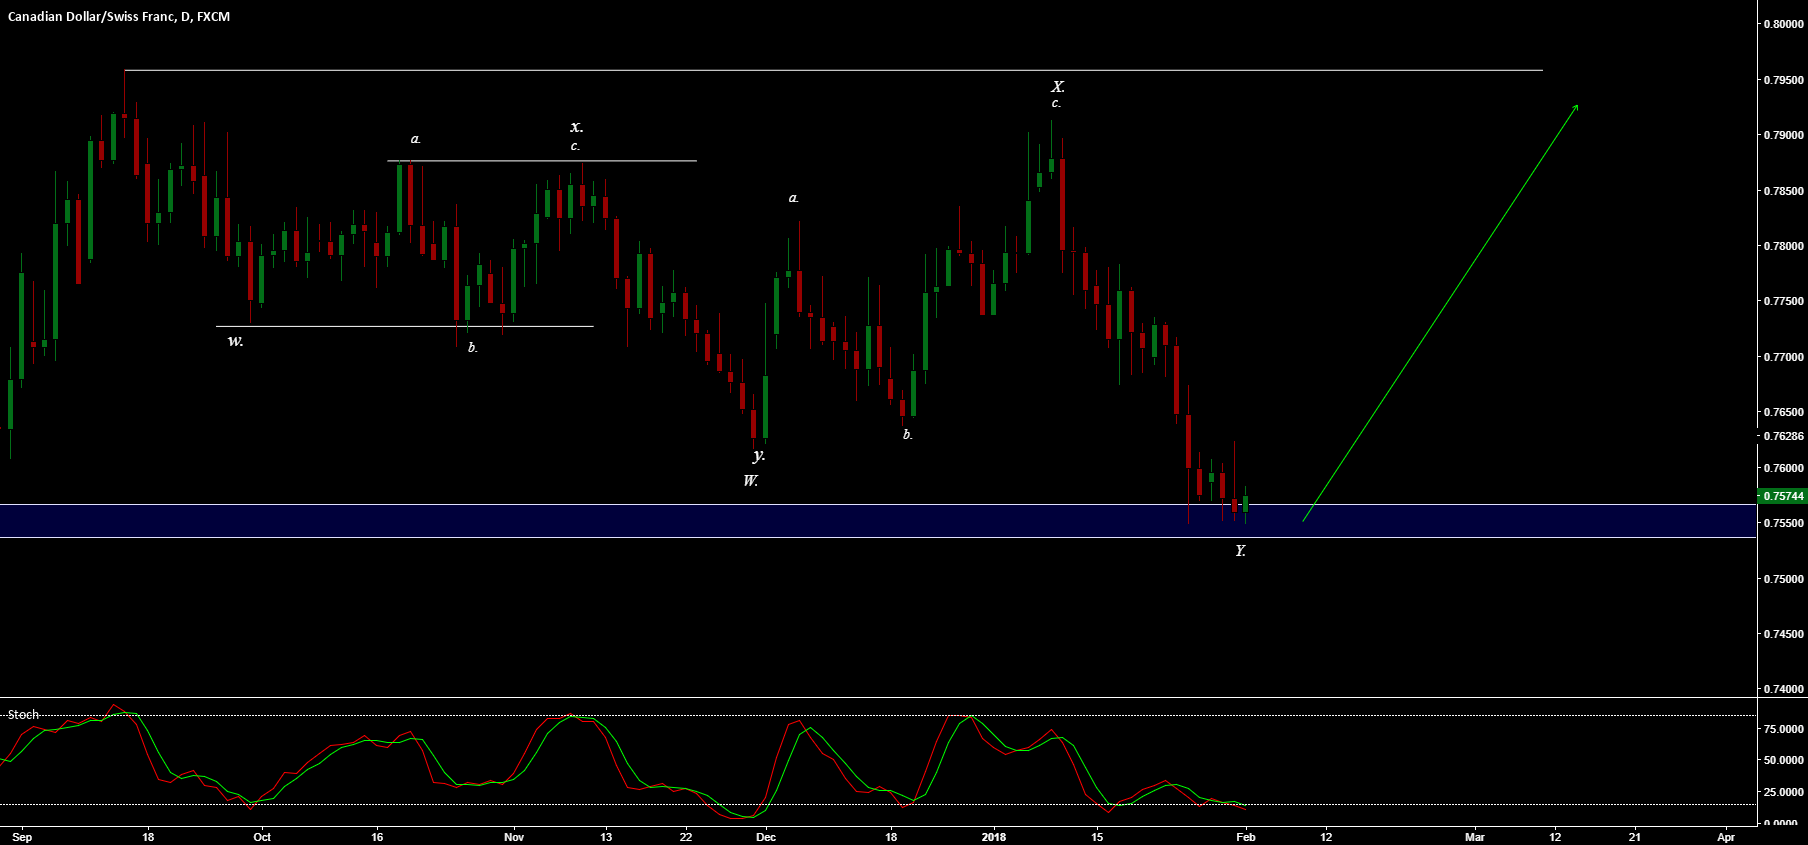 CAD/CHF - A RATHER COMPLEX CORRECTION IS OVER?